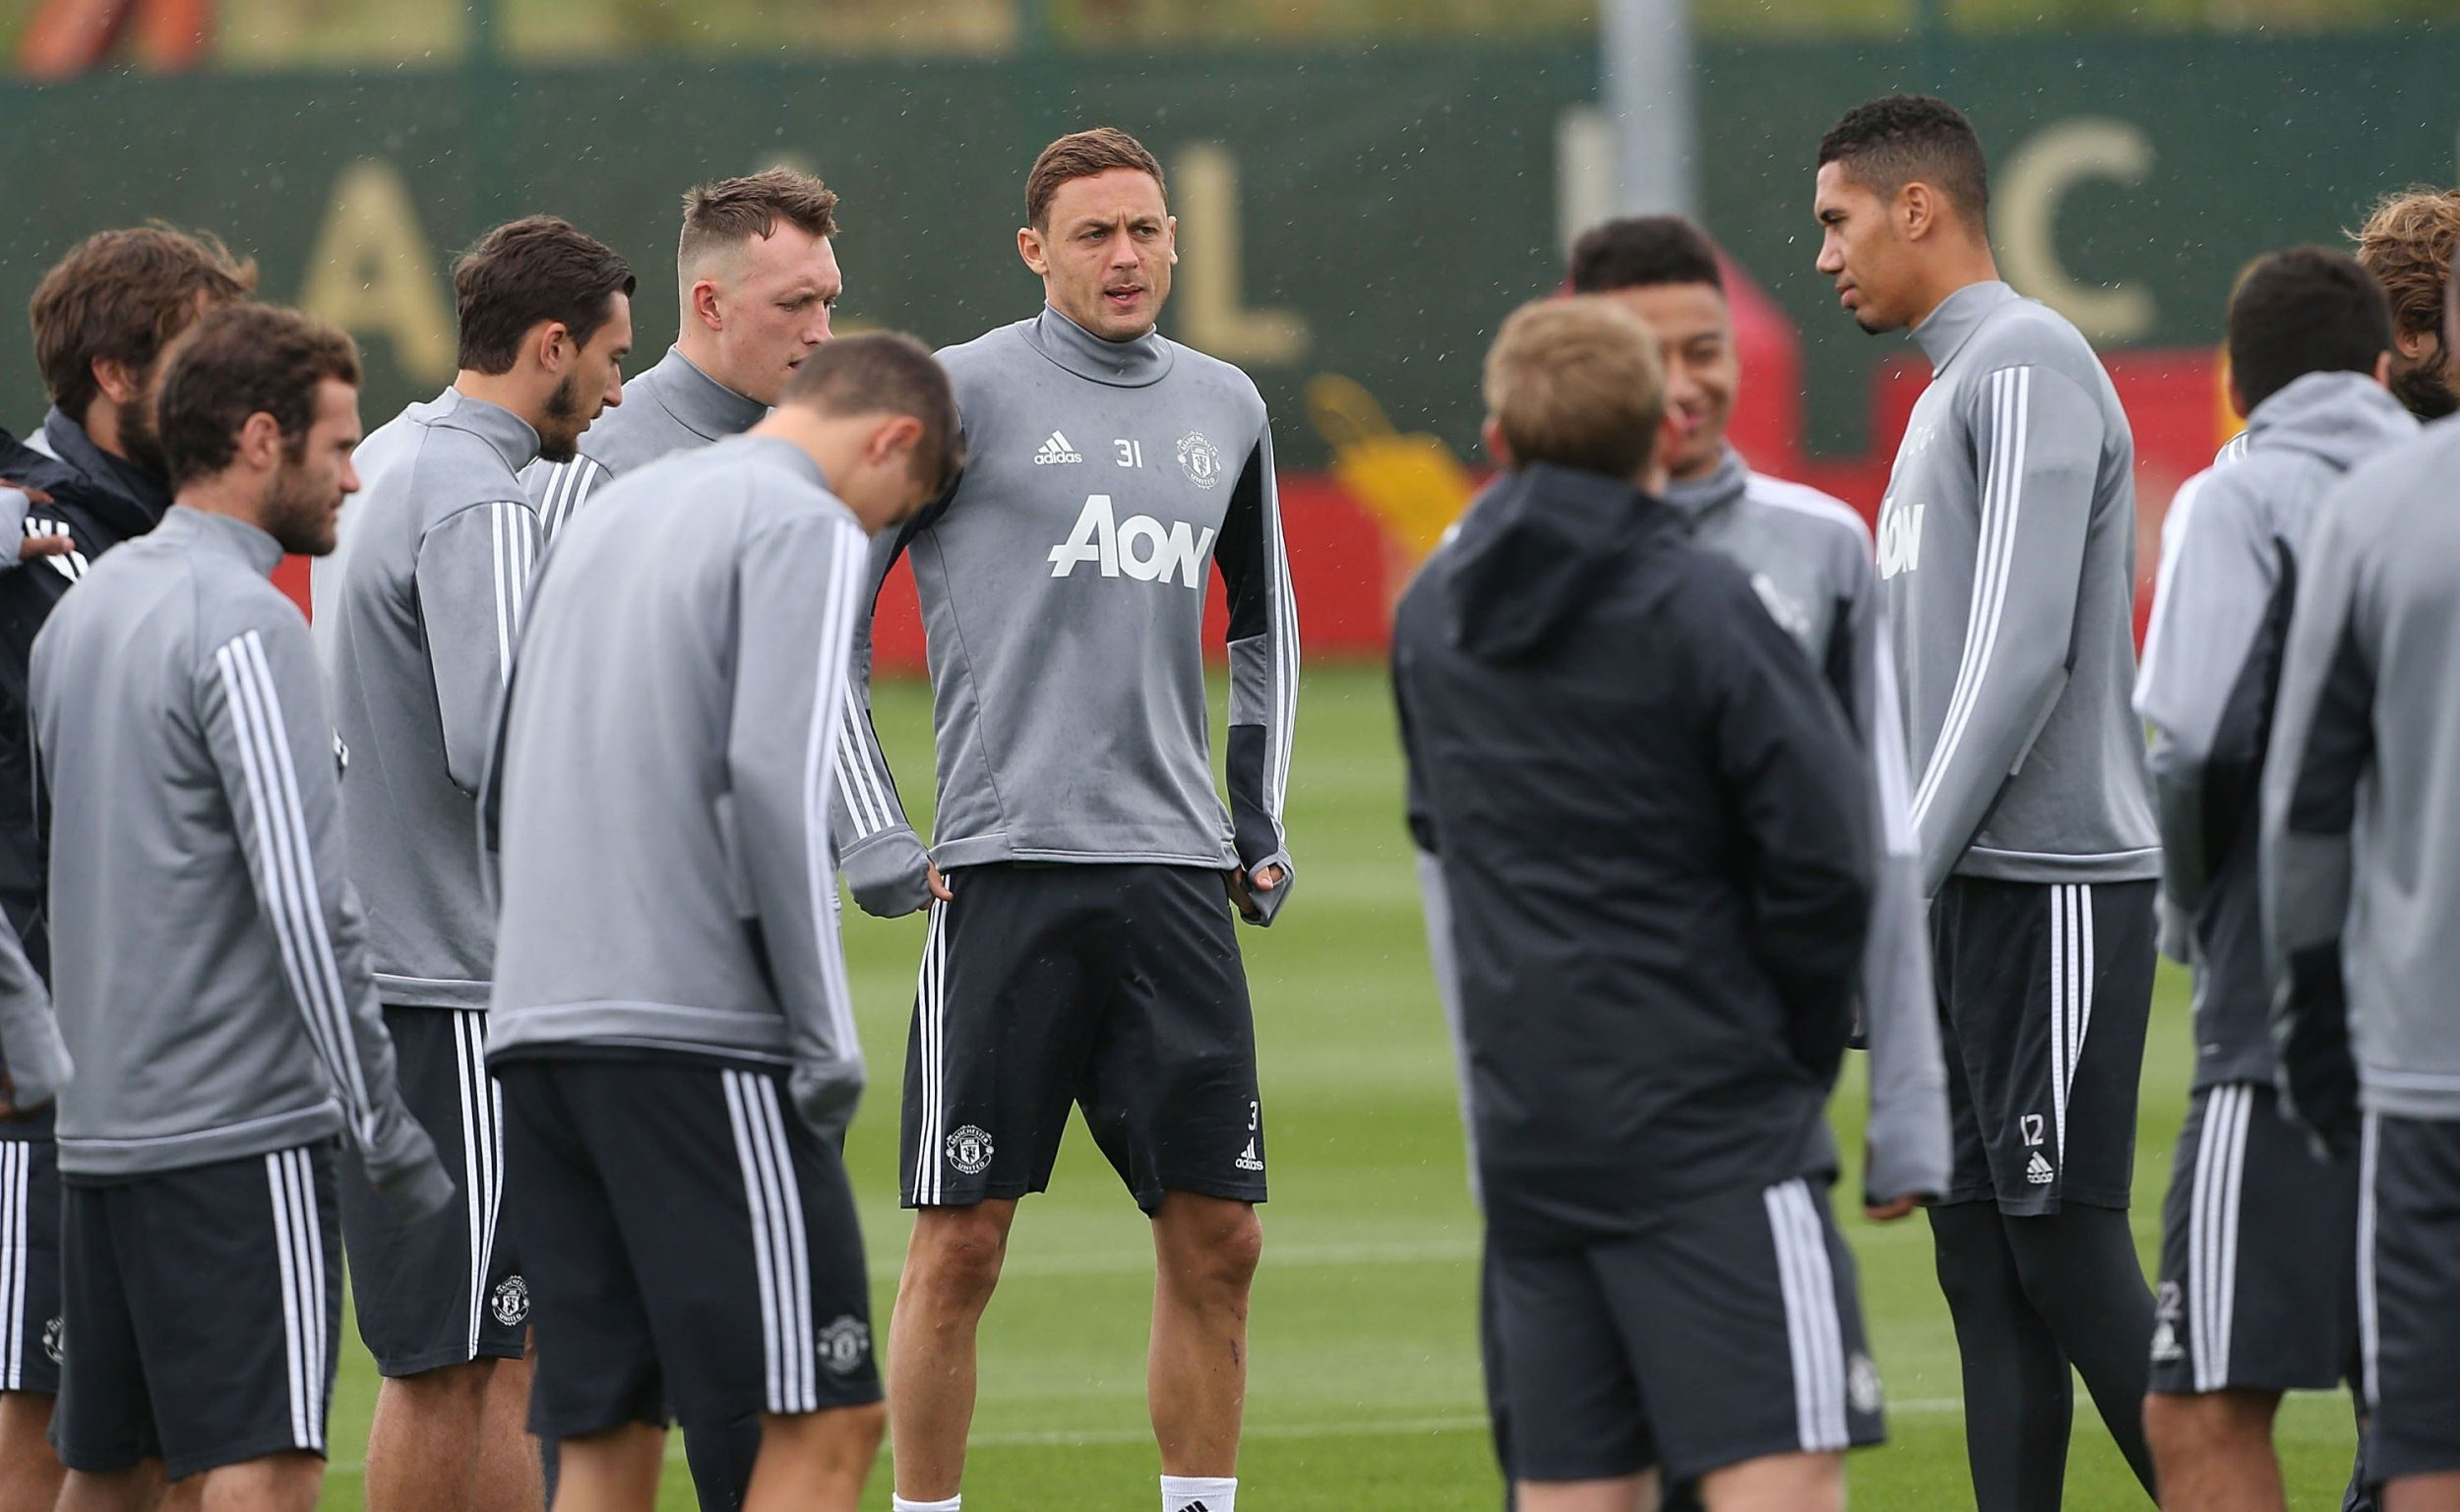 MANCHESTER, ENGLAND - AUGUST 01: (EXCLUSIVE COVERAGE) Nemanja Matic of Manchester United during a first team training session at Aon Training Complex on August 1, 2017 in Manchester, England. (Photo by John Peters/Man Utd via Getty Images)